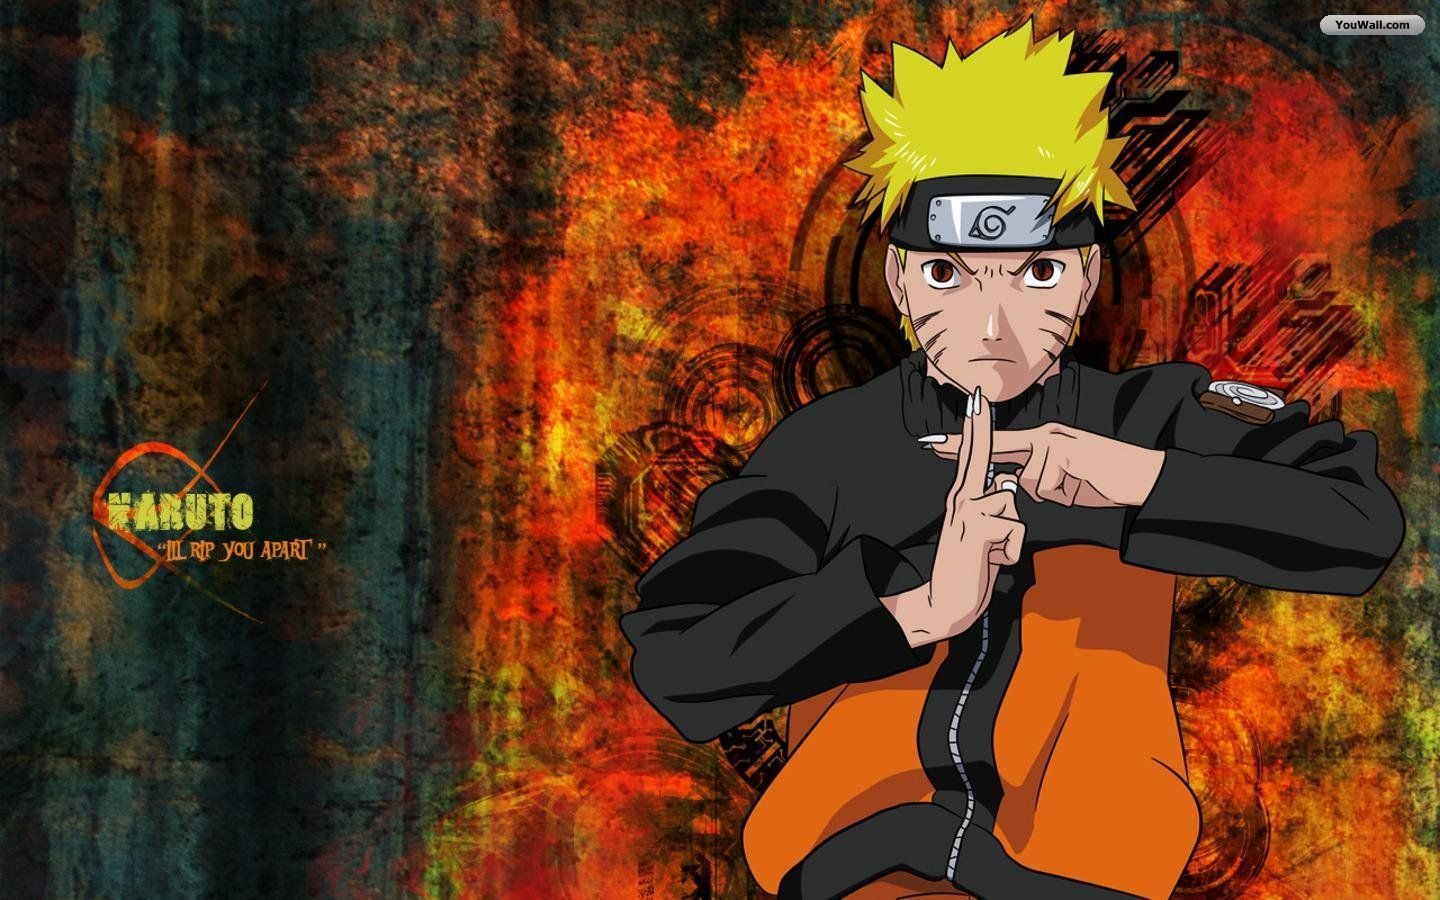 Download Naruto Wallpapers 41 Wallpapers Adorable Wallpapers